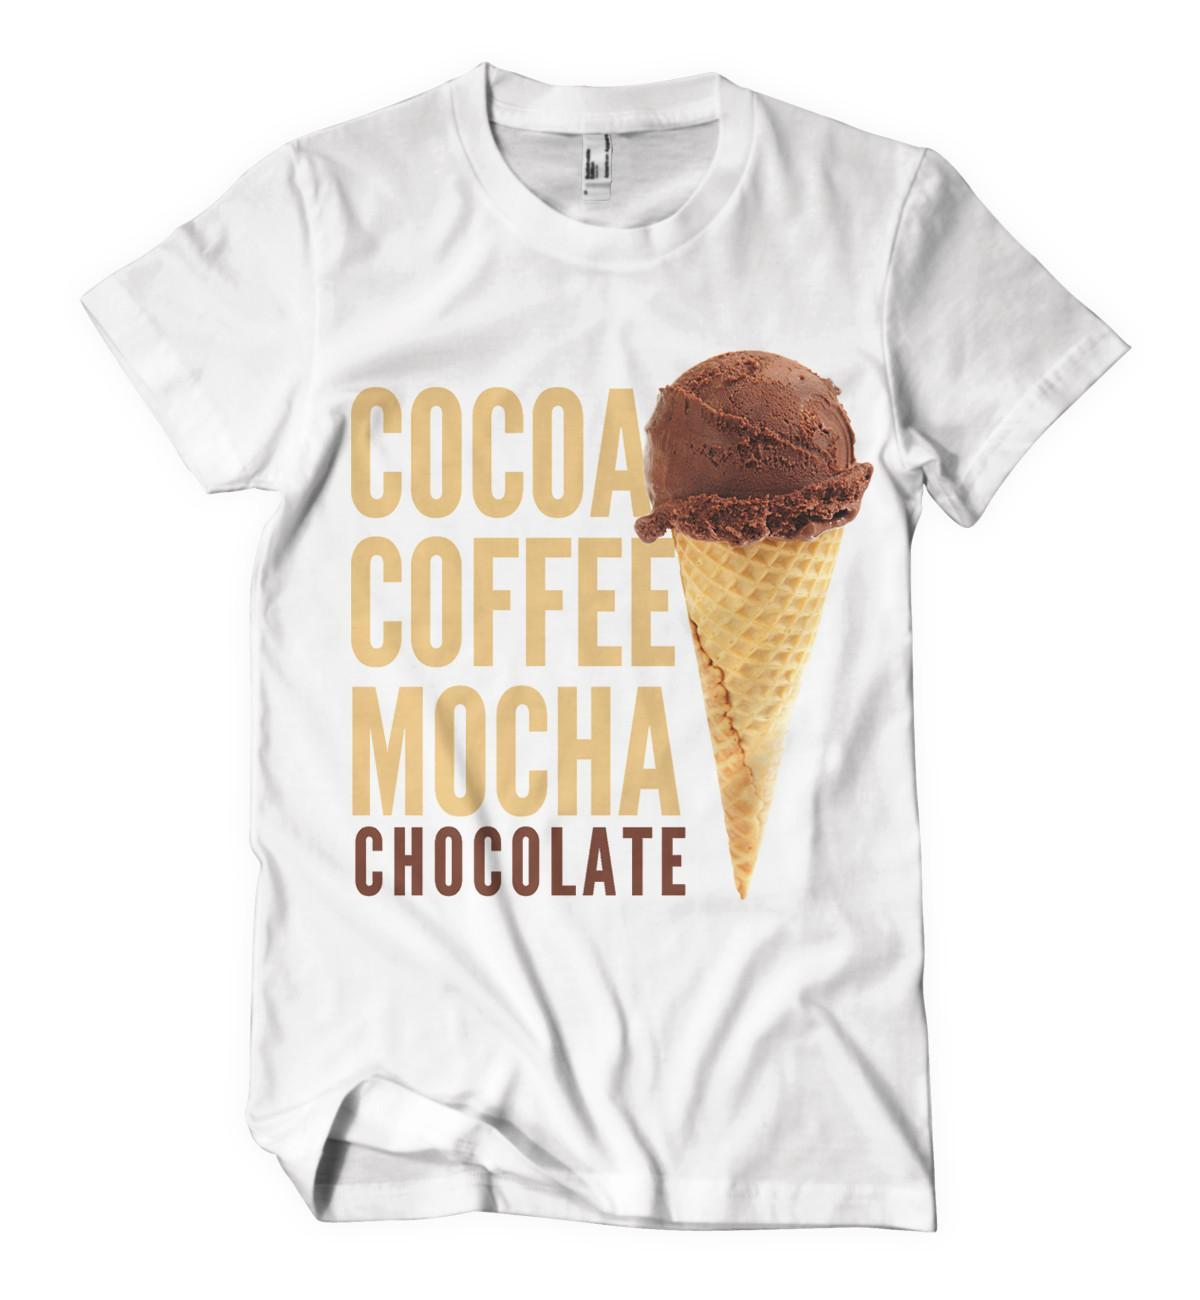 Cocoa Coffee Mocha Chocolate T-Shirt - Izzy & Liv - crew neck